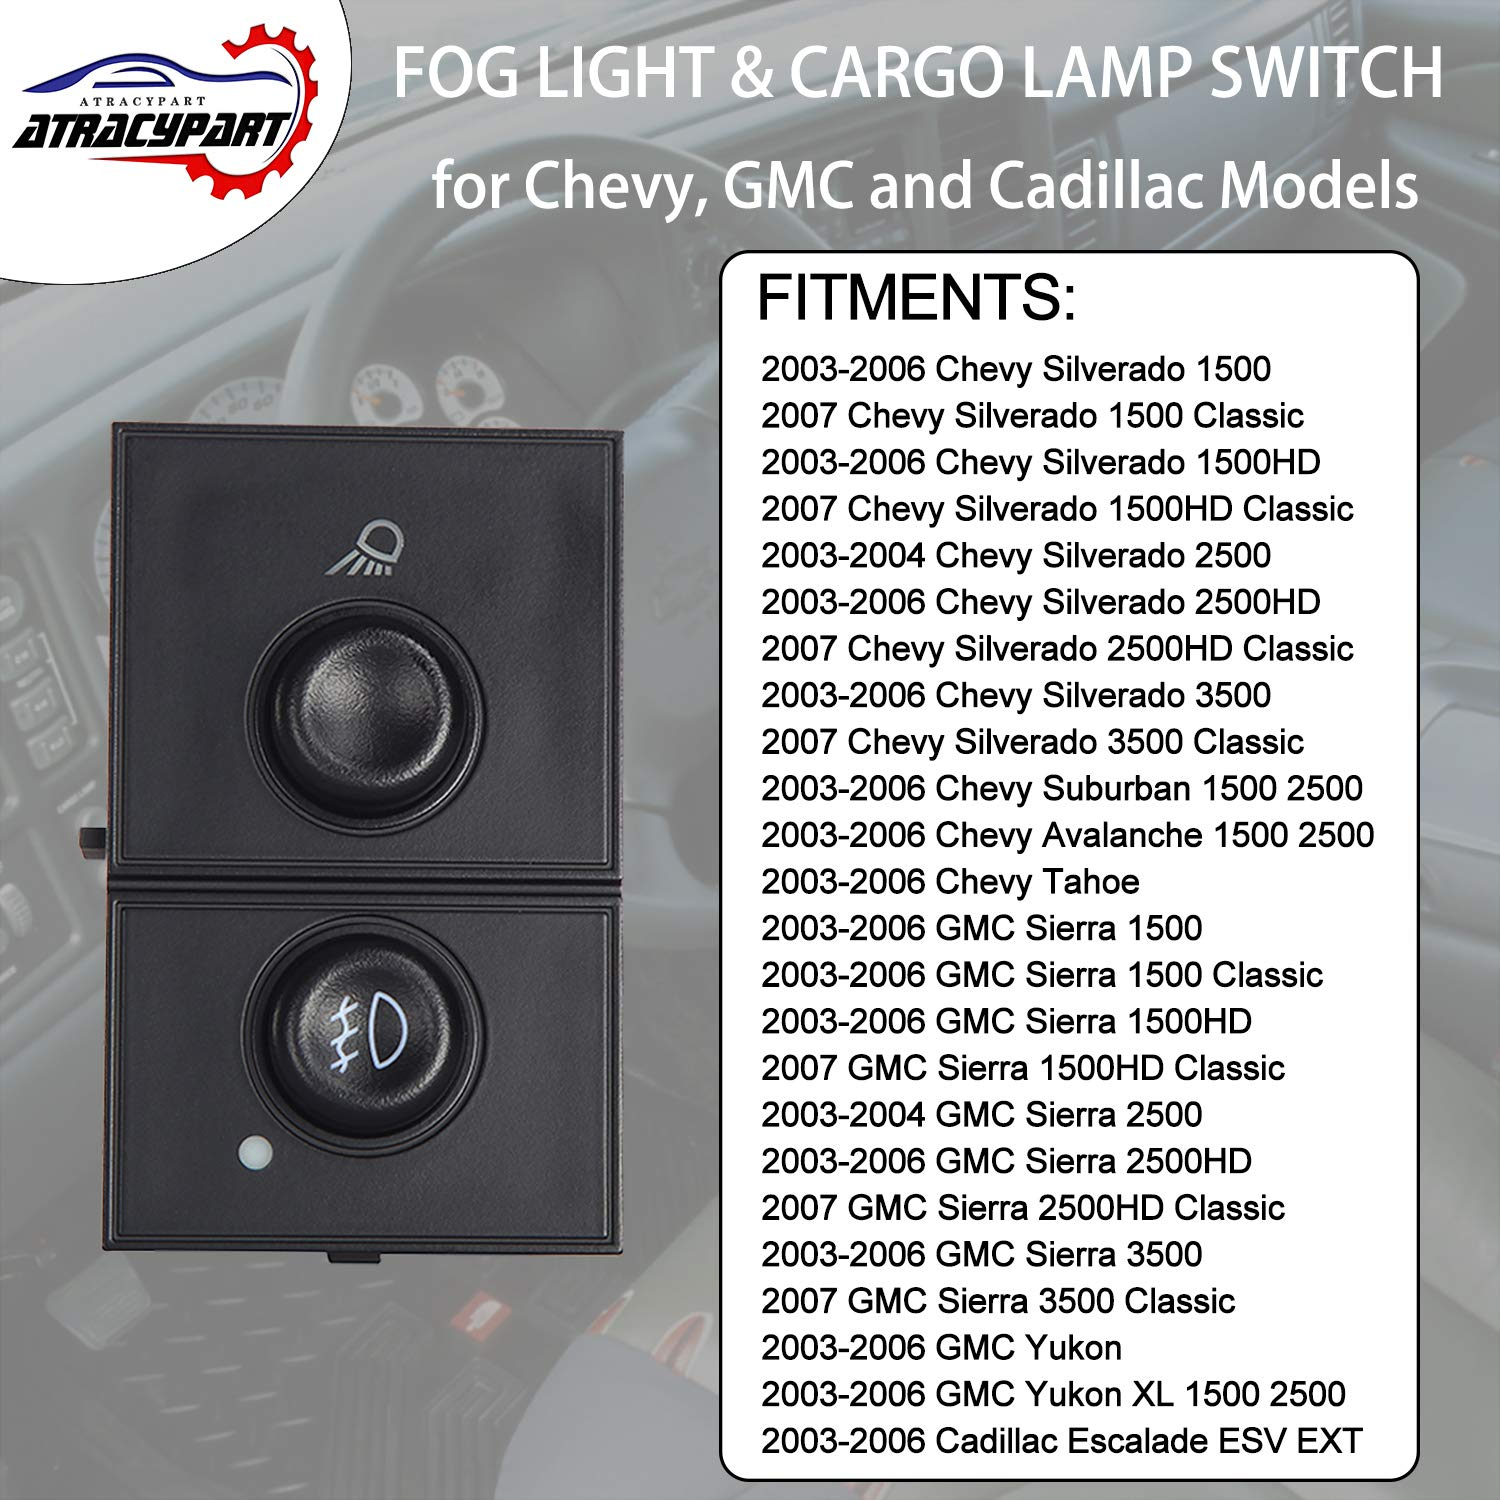 New Headlight Fog Light Switch For 2007-14 Chevy Avalanche Tahoe GMC Sierra 1500 2500 Yukon 15096895,15926099